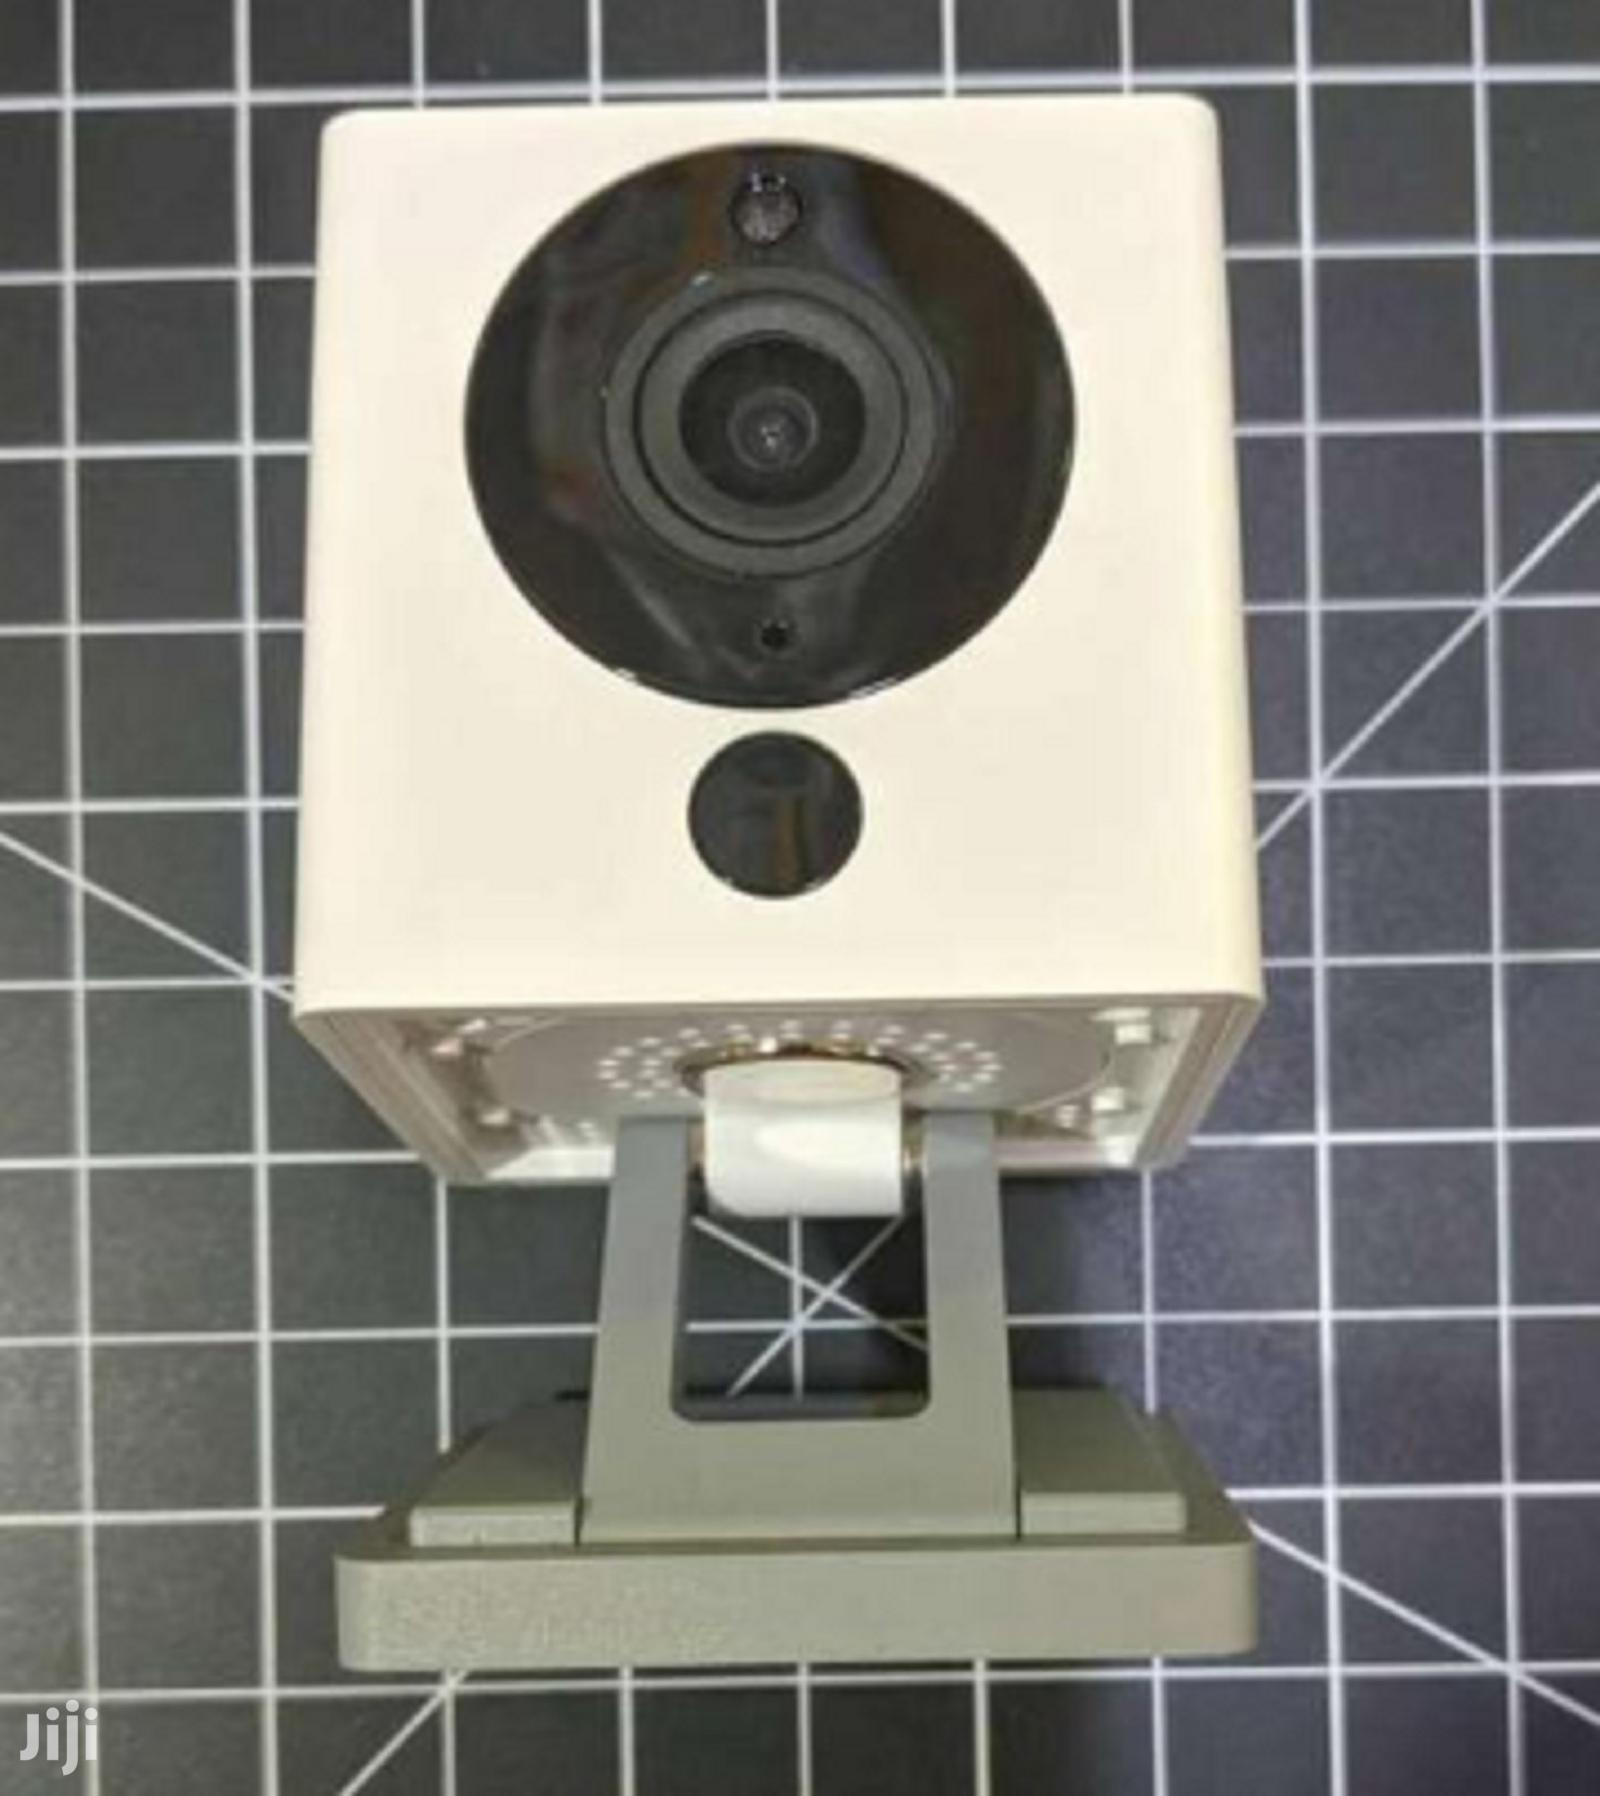 Archive Wyze Cam V2 1080p Hd Indoor Wireless Smart Home Camera Nann In Nairobi Central Security Surveillance Super Deal Africa Jiji Co Ke For Sale In Nairobi Central Buy Security